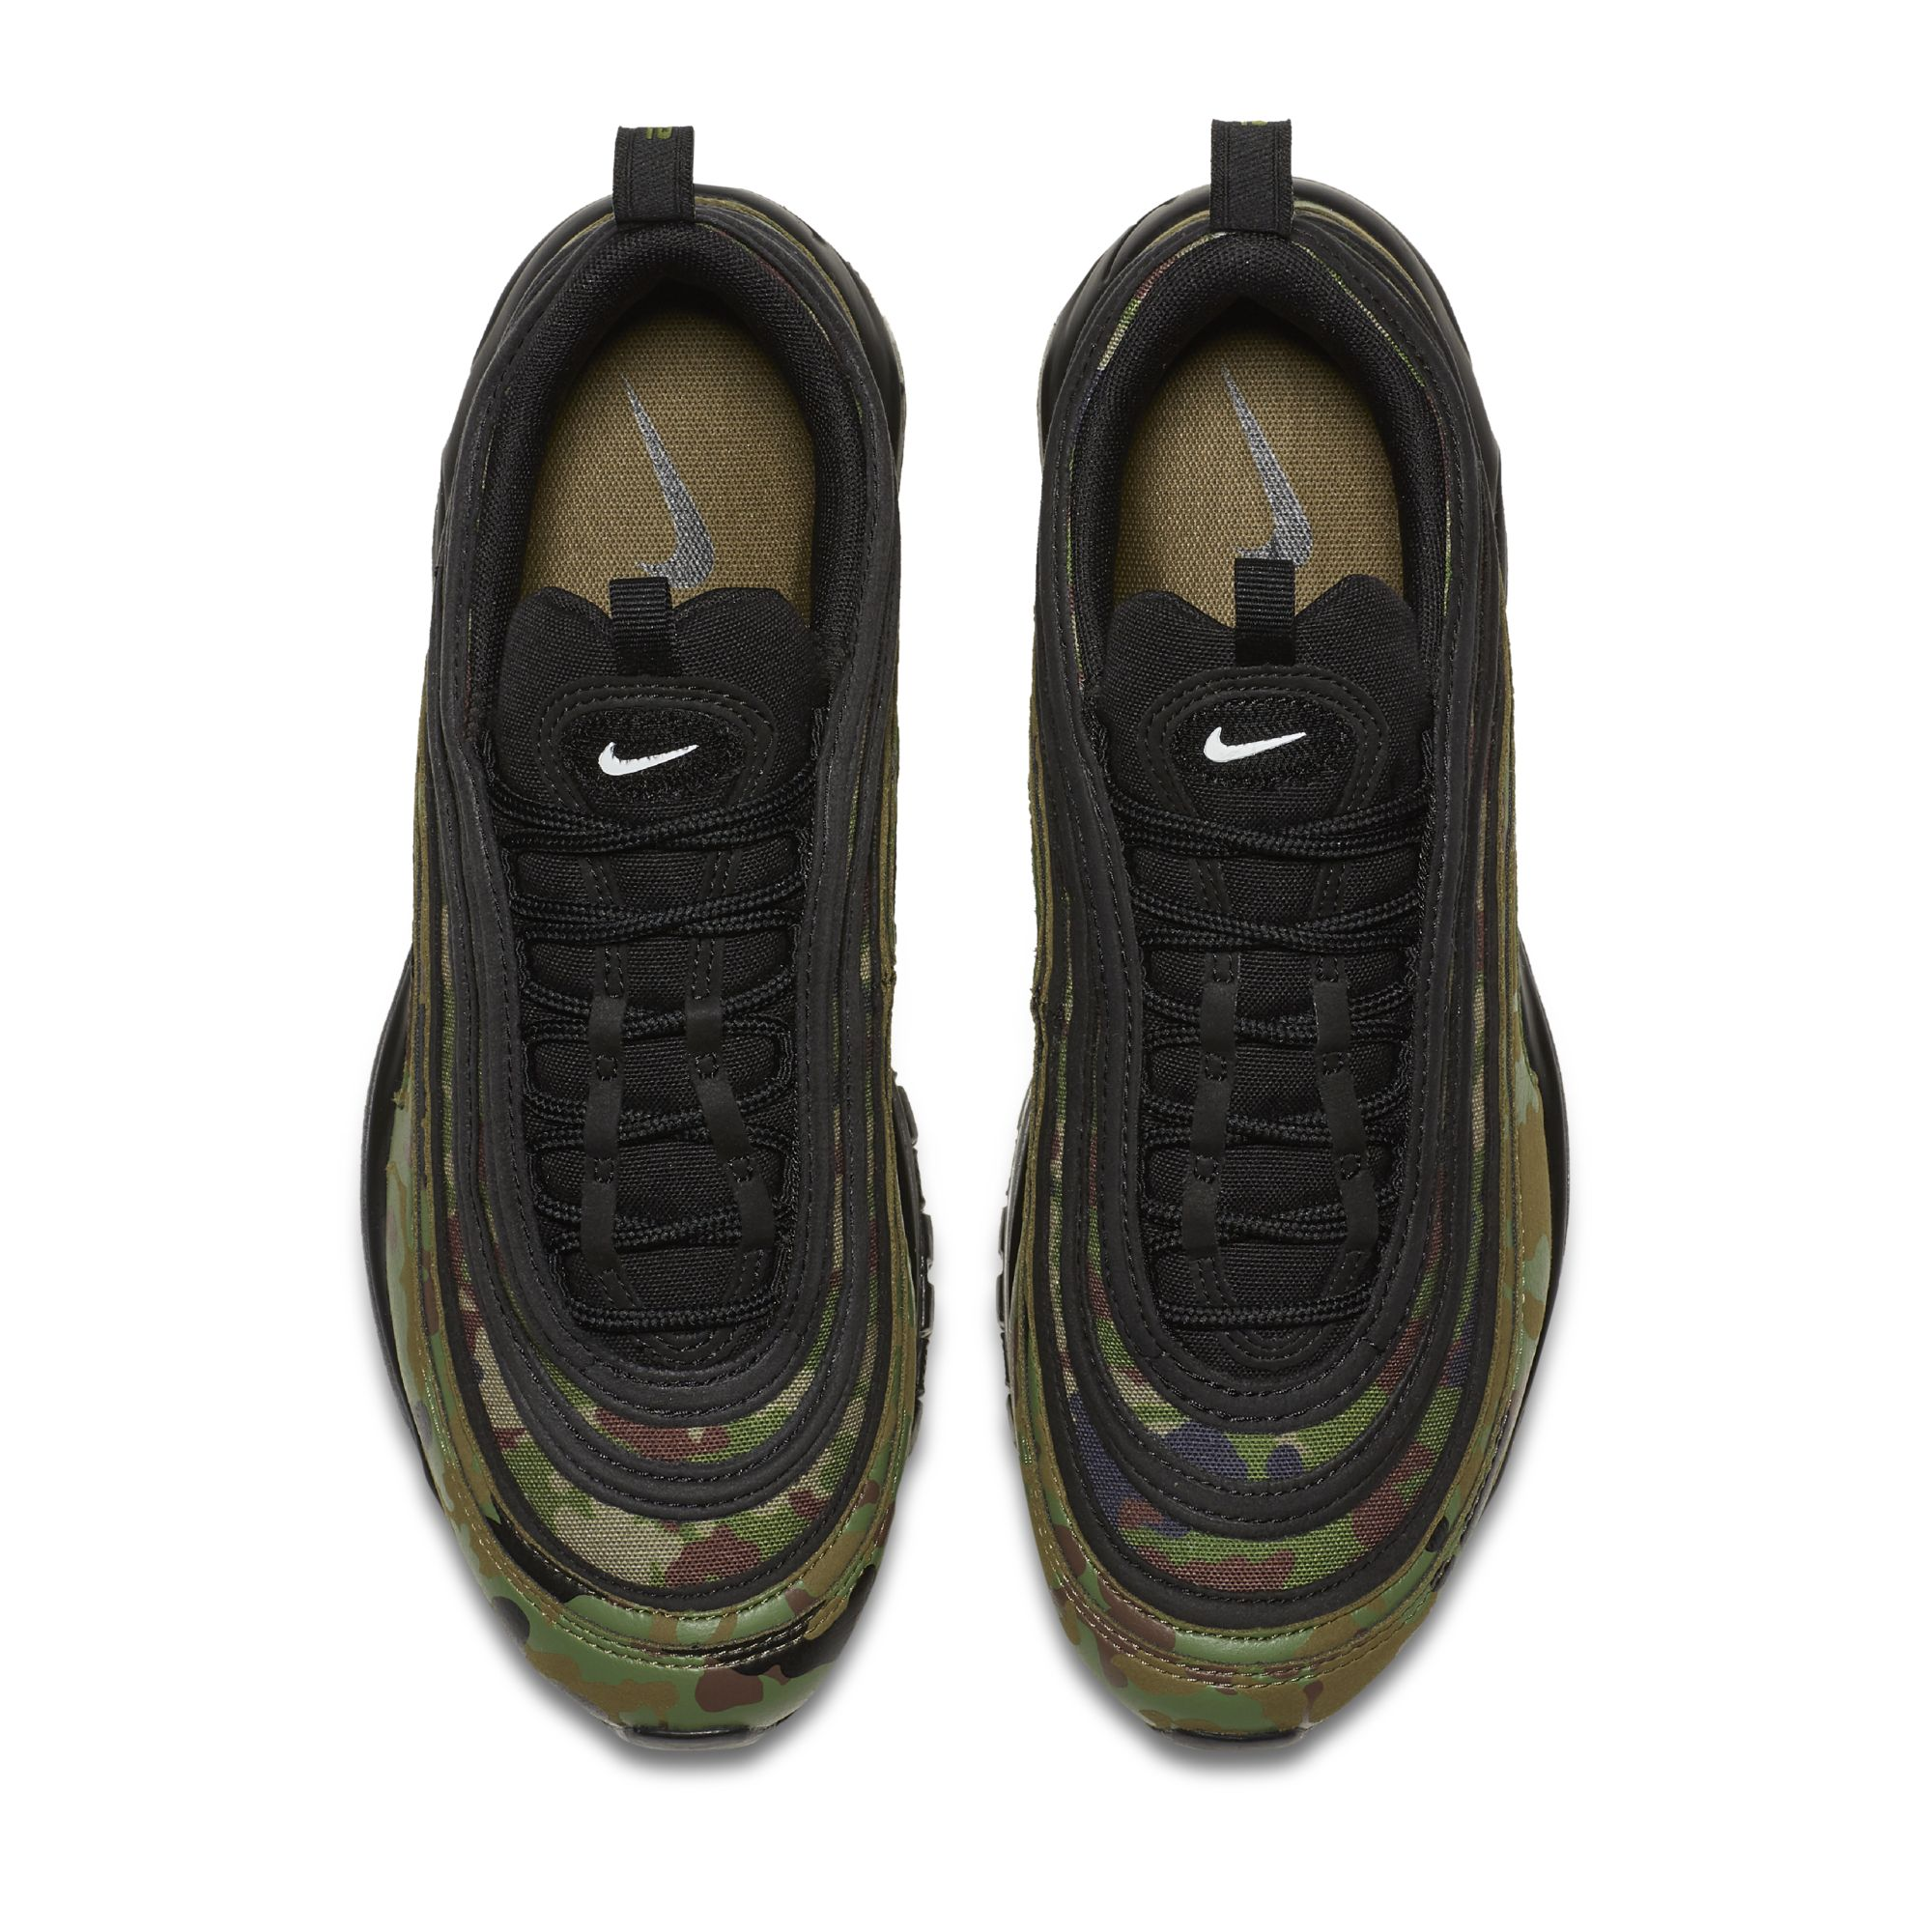 Country Air Weartesters Max 97 Nike 4 Camo Japan Pack Htpxpnq